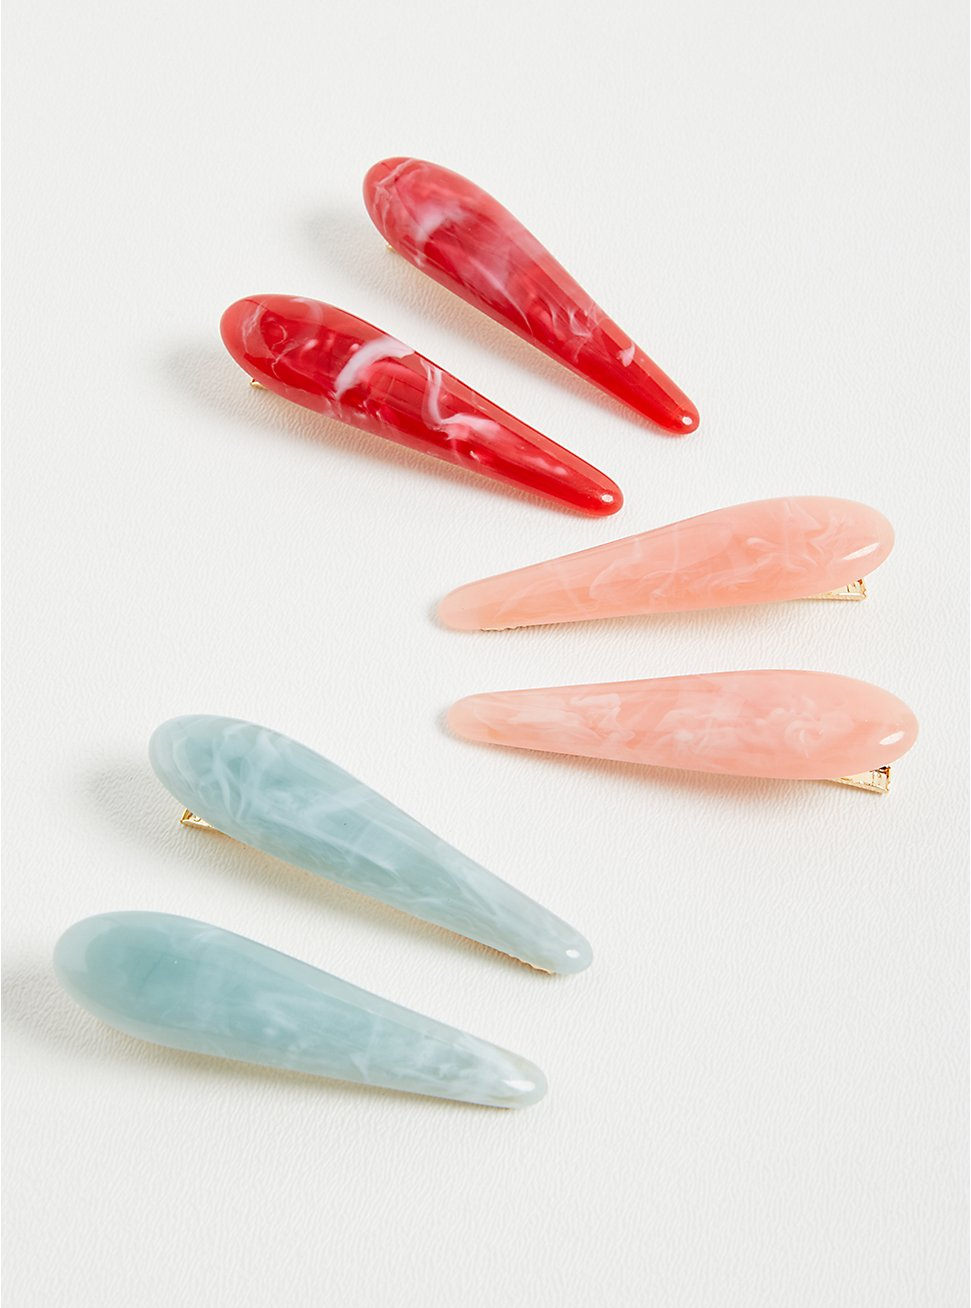 Multi Colored Resin Clips - Set of 3, , hi-res